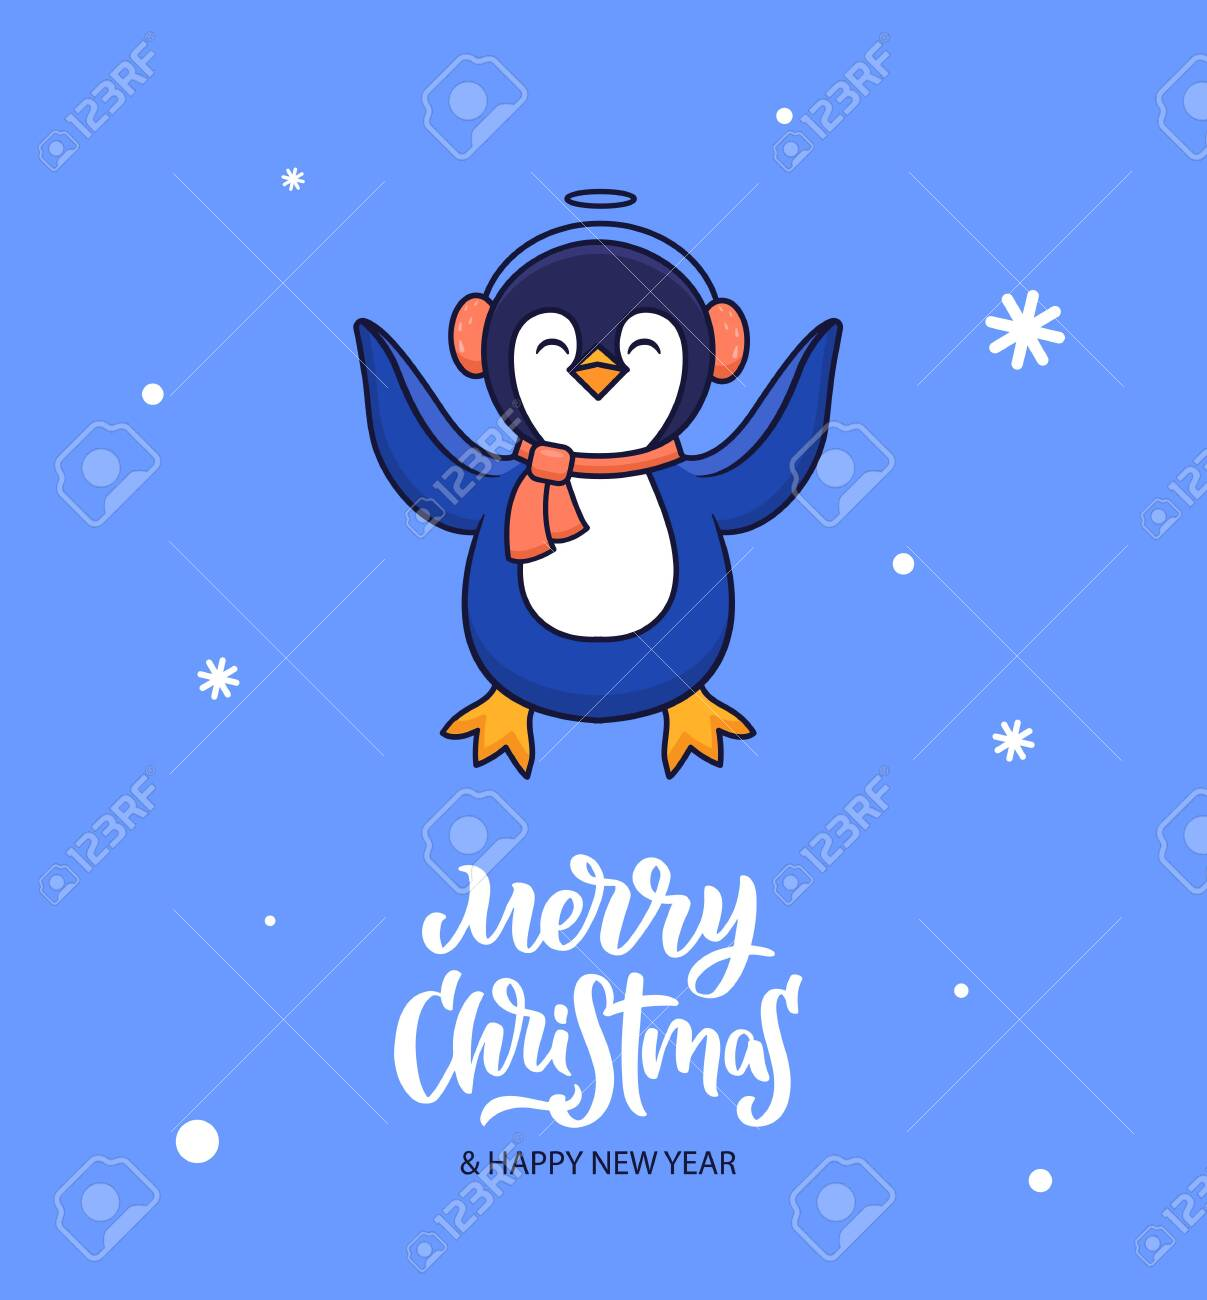 Merry Christmas and a Happy New Year Penguin T-Shirt